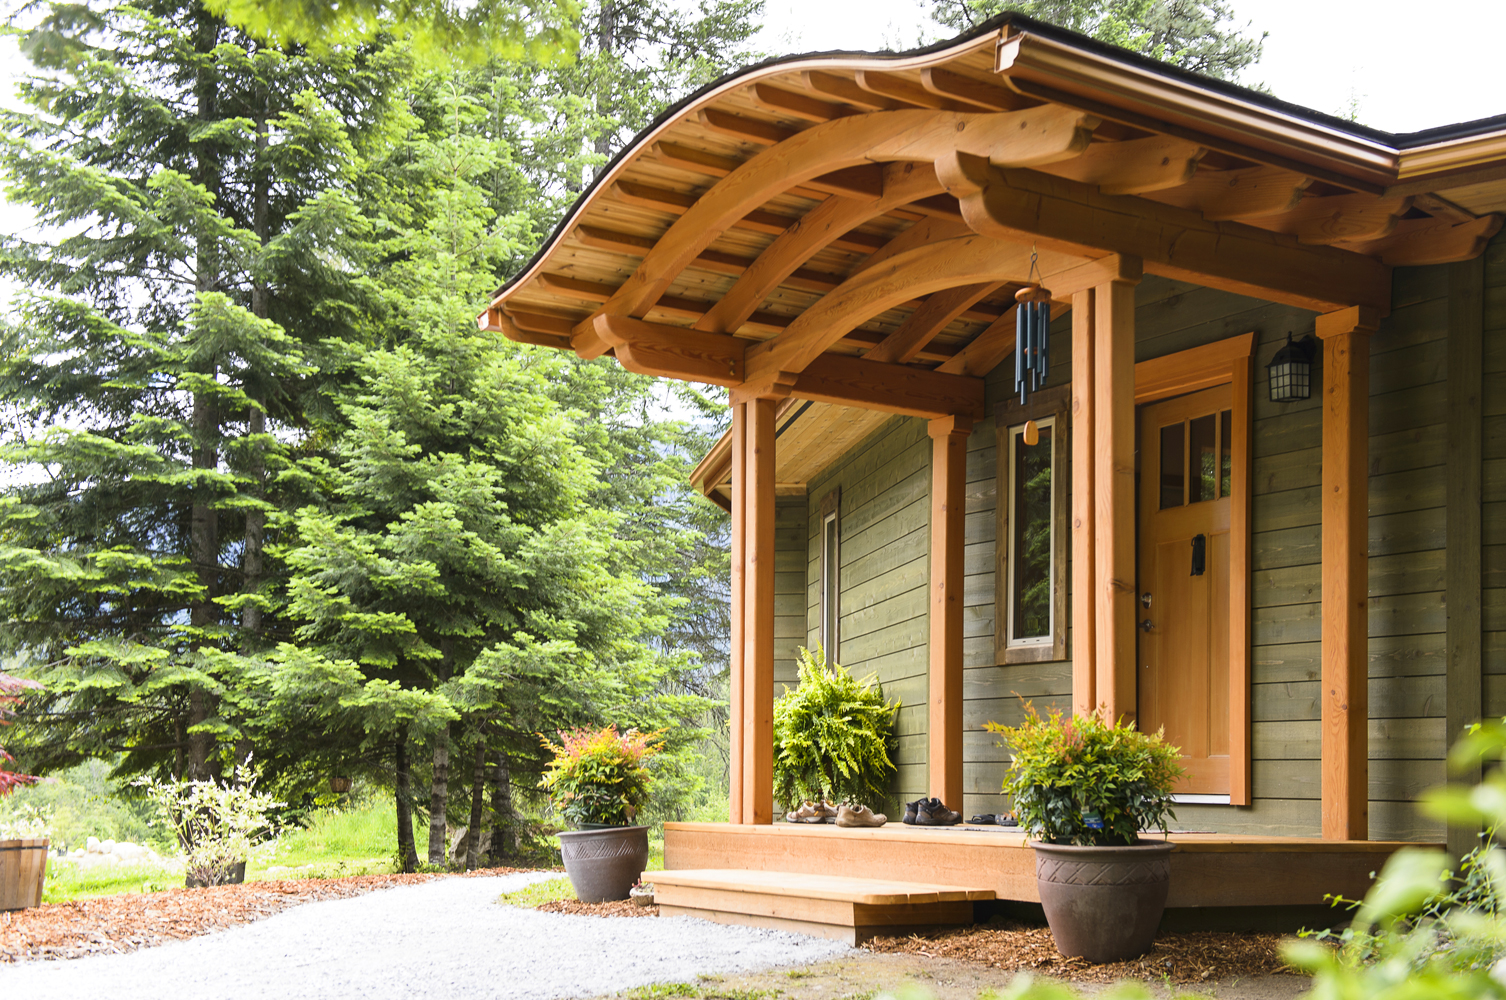 Round Homes Designs: What Is It Like To Live In A Round House?